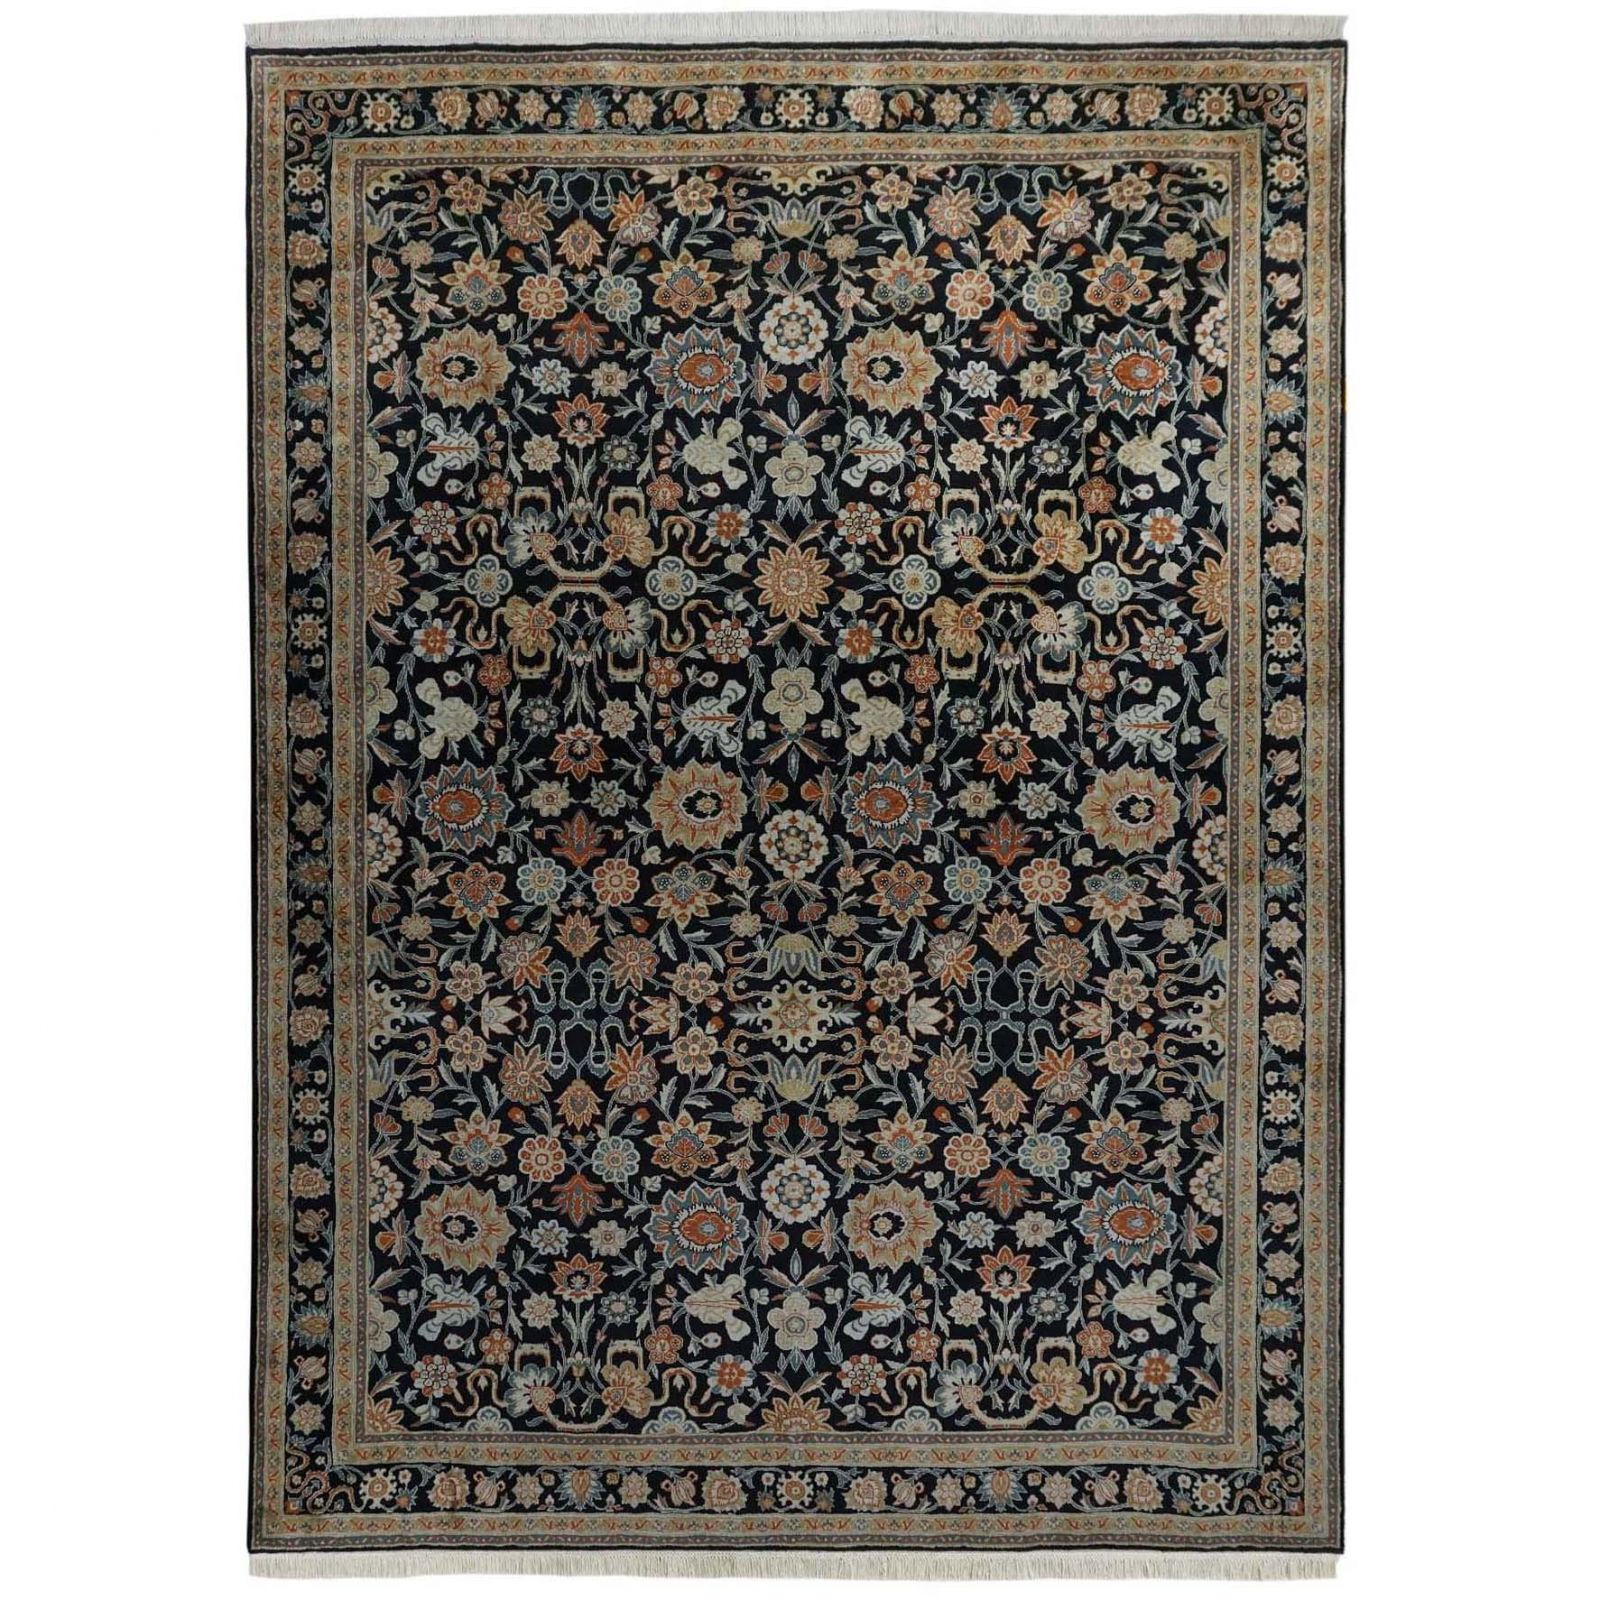 Kerman Persian design 100% silk carpet